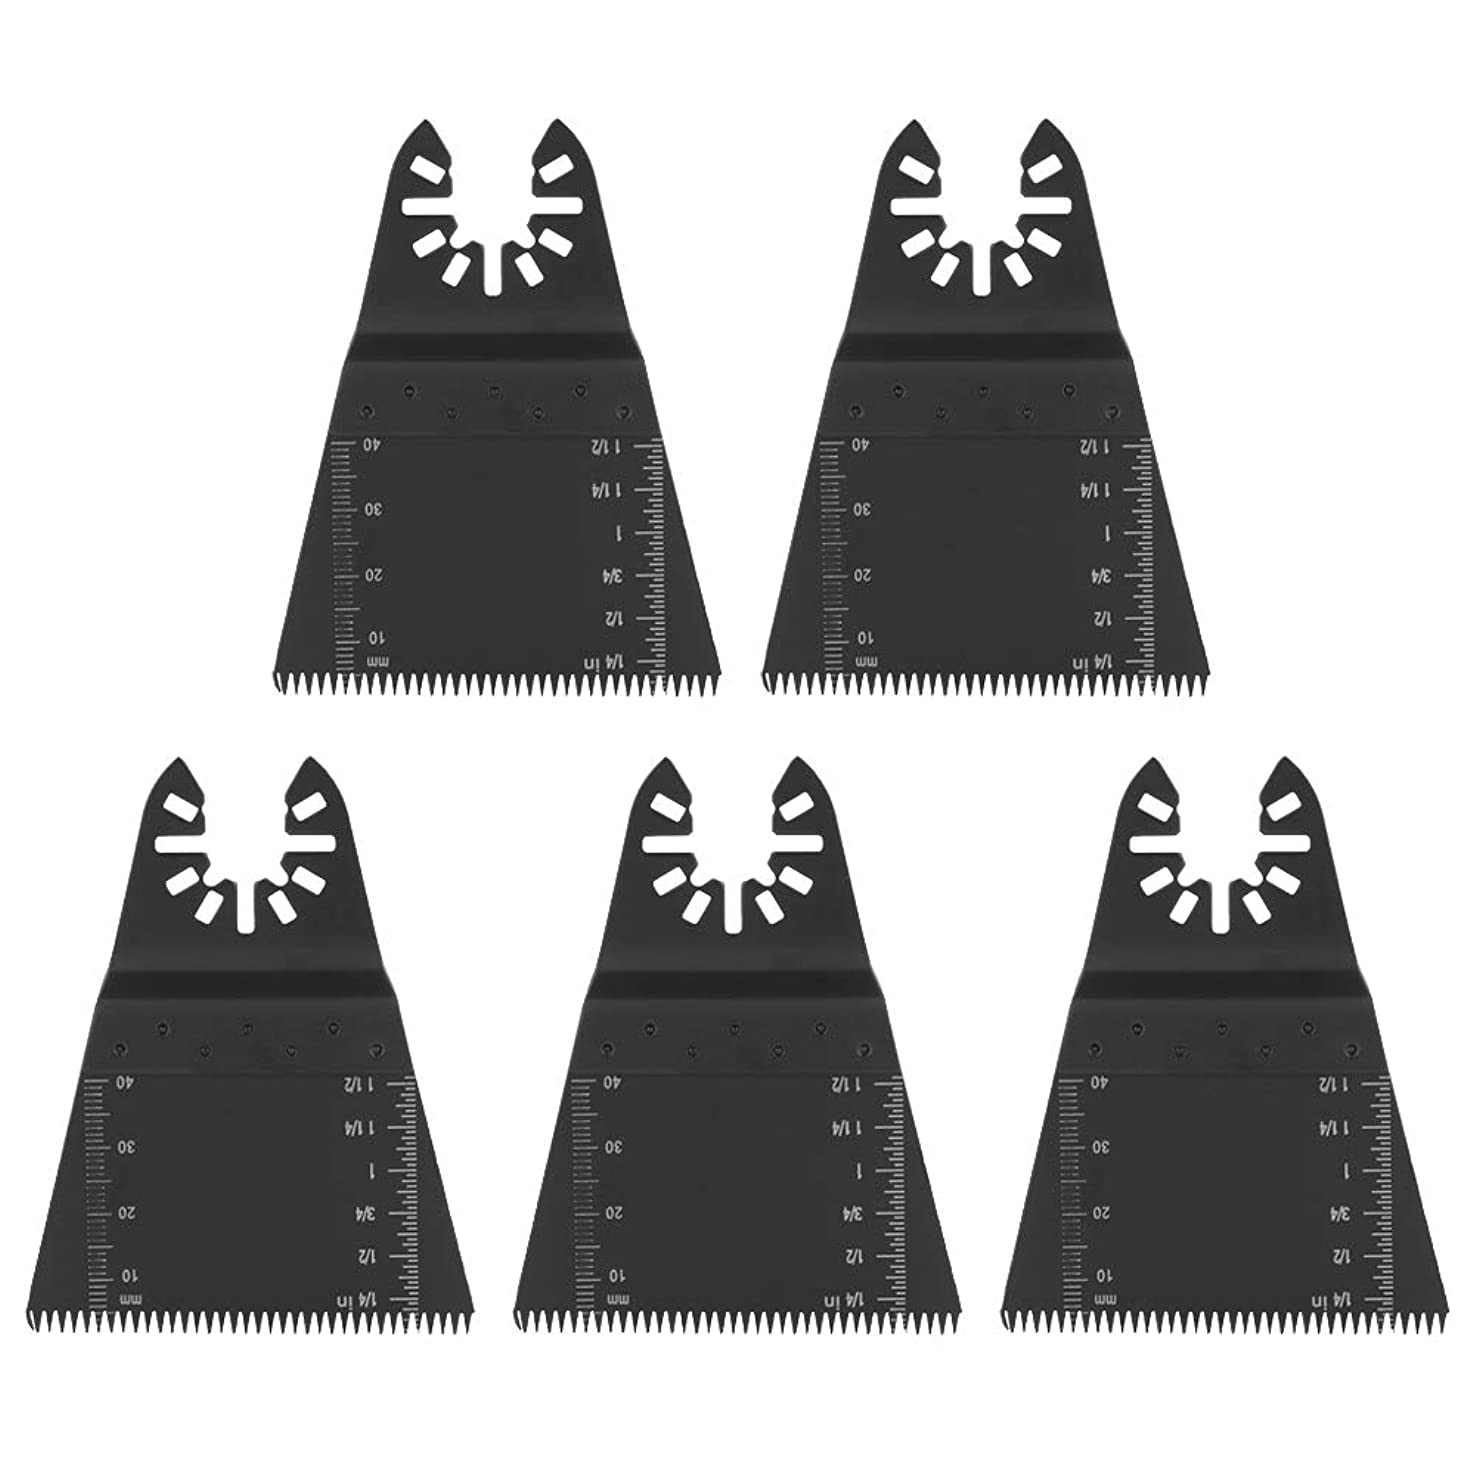 Aufee 5 Pcs Oscillating Saw Blades, Material of High Carbon Steel, Oscillating Tools Accessories for Oscillating Multi Tool